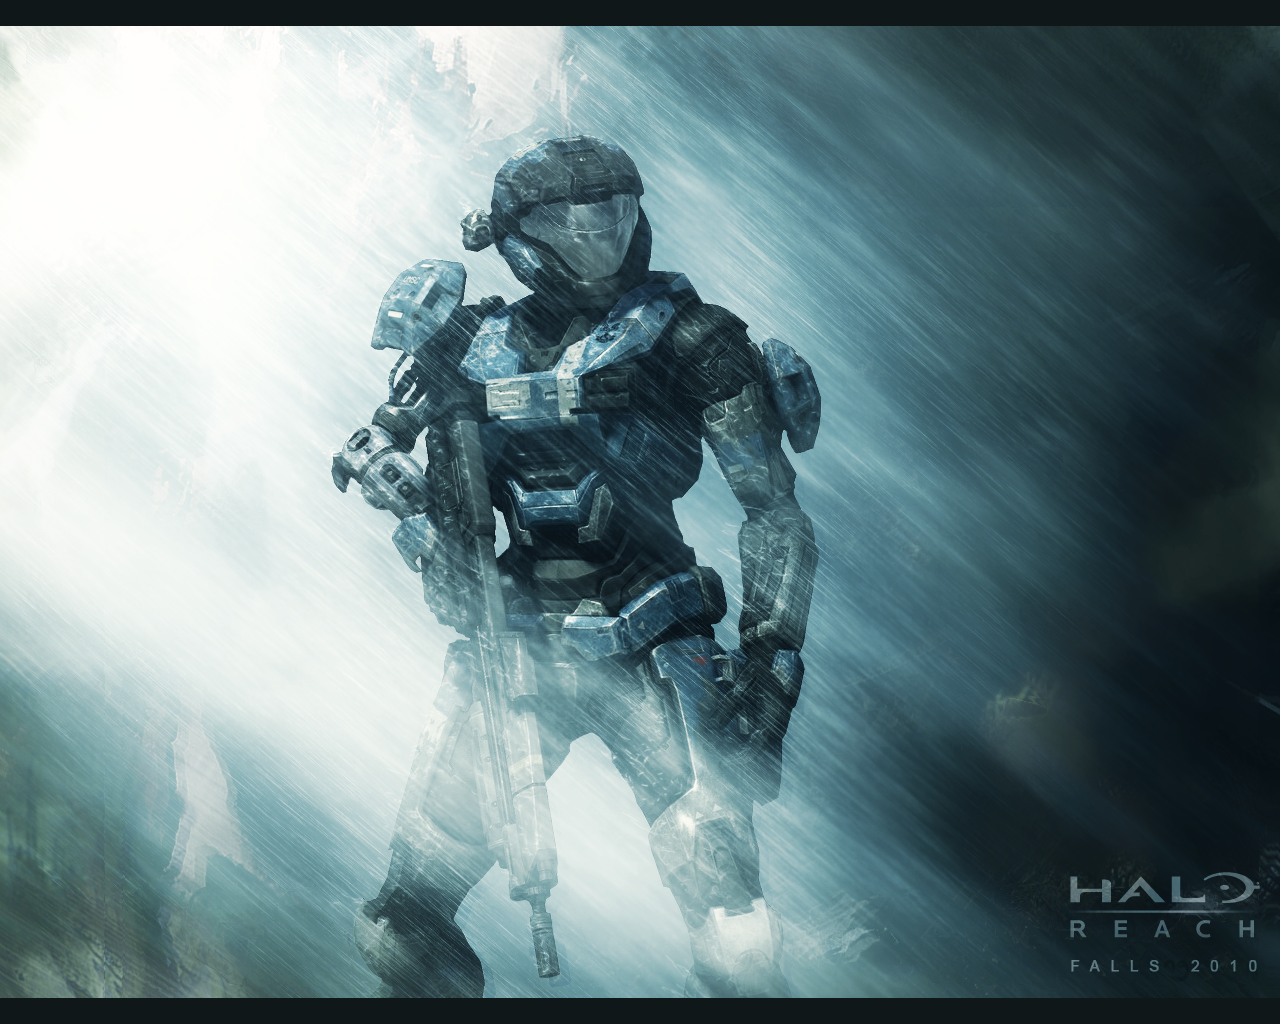 Halo Reach Kat Wallpaper Full Resolution‎